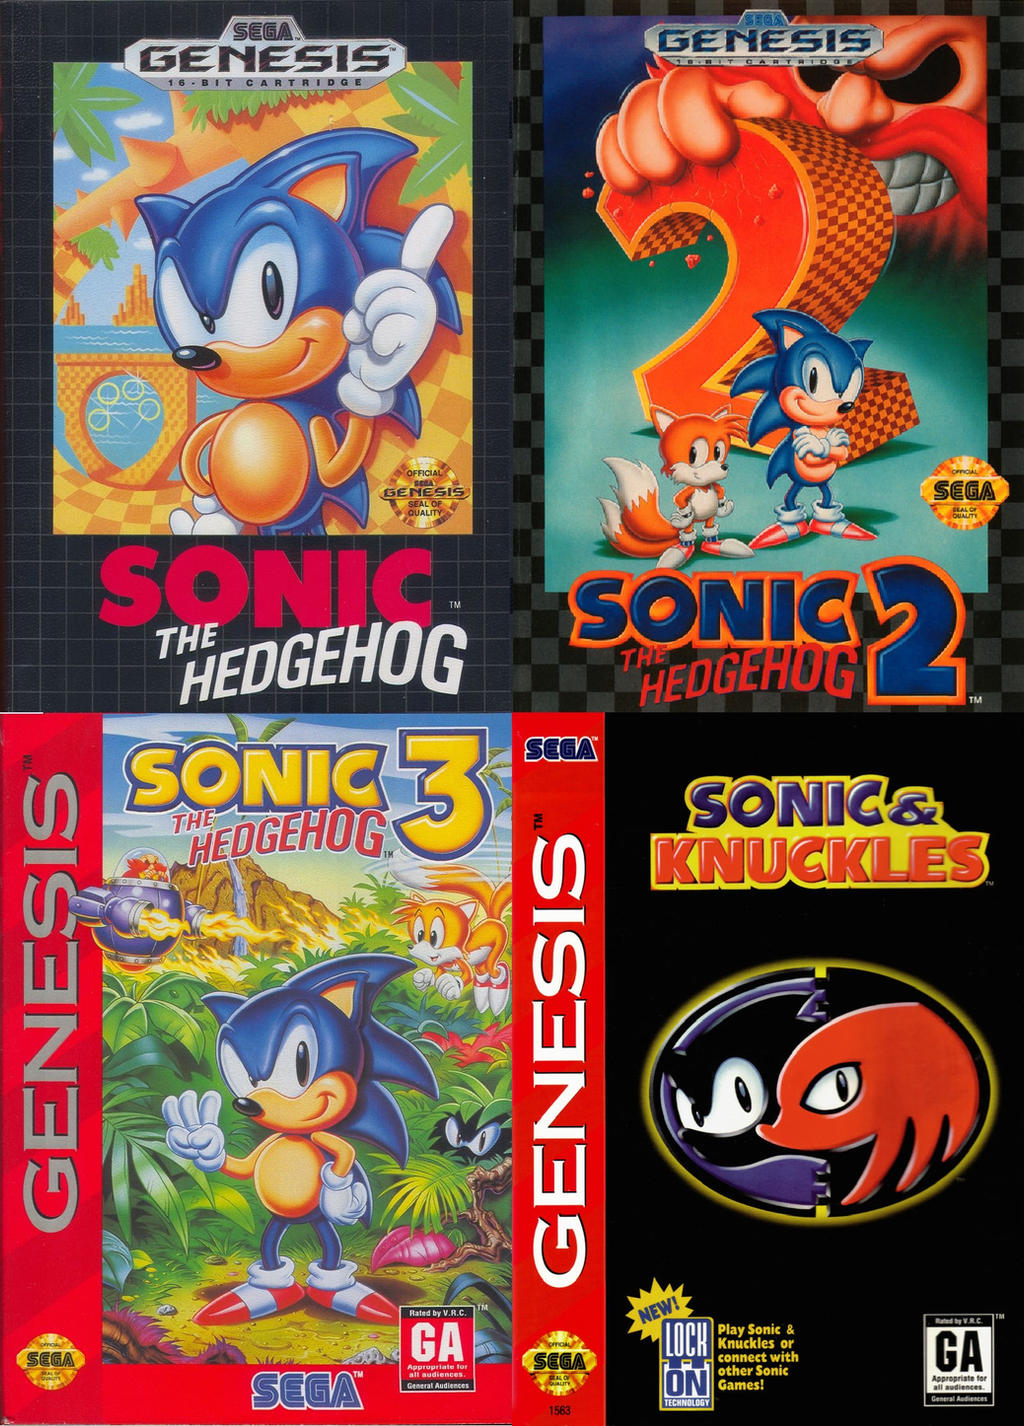 Sonic The Hedgehog Genesis Box Art Collage By Marioandsonic999 On Deviantart